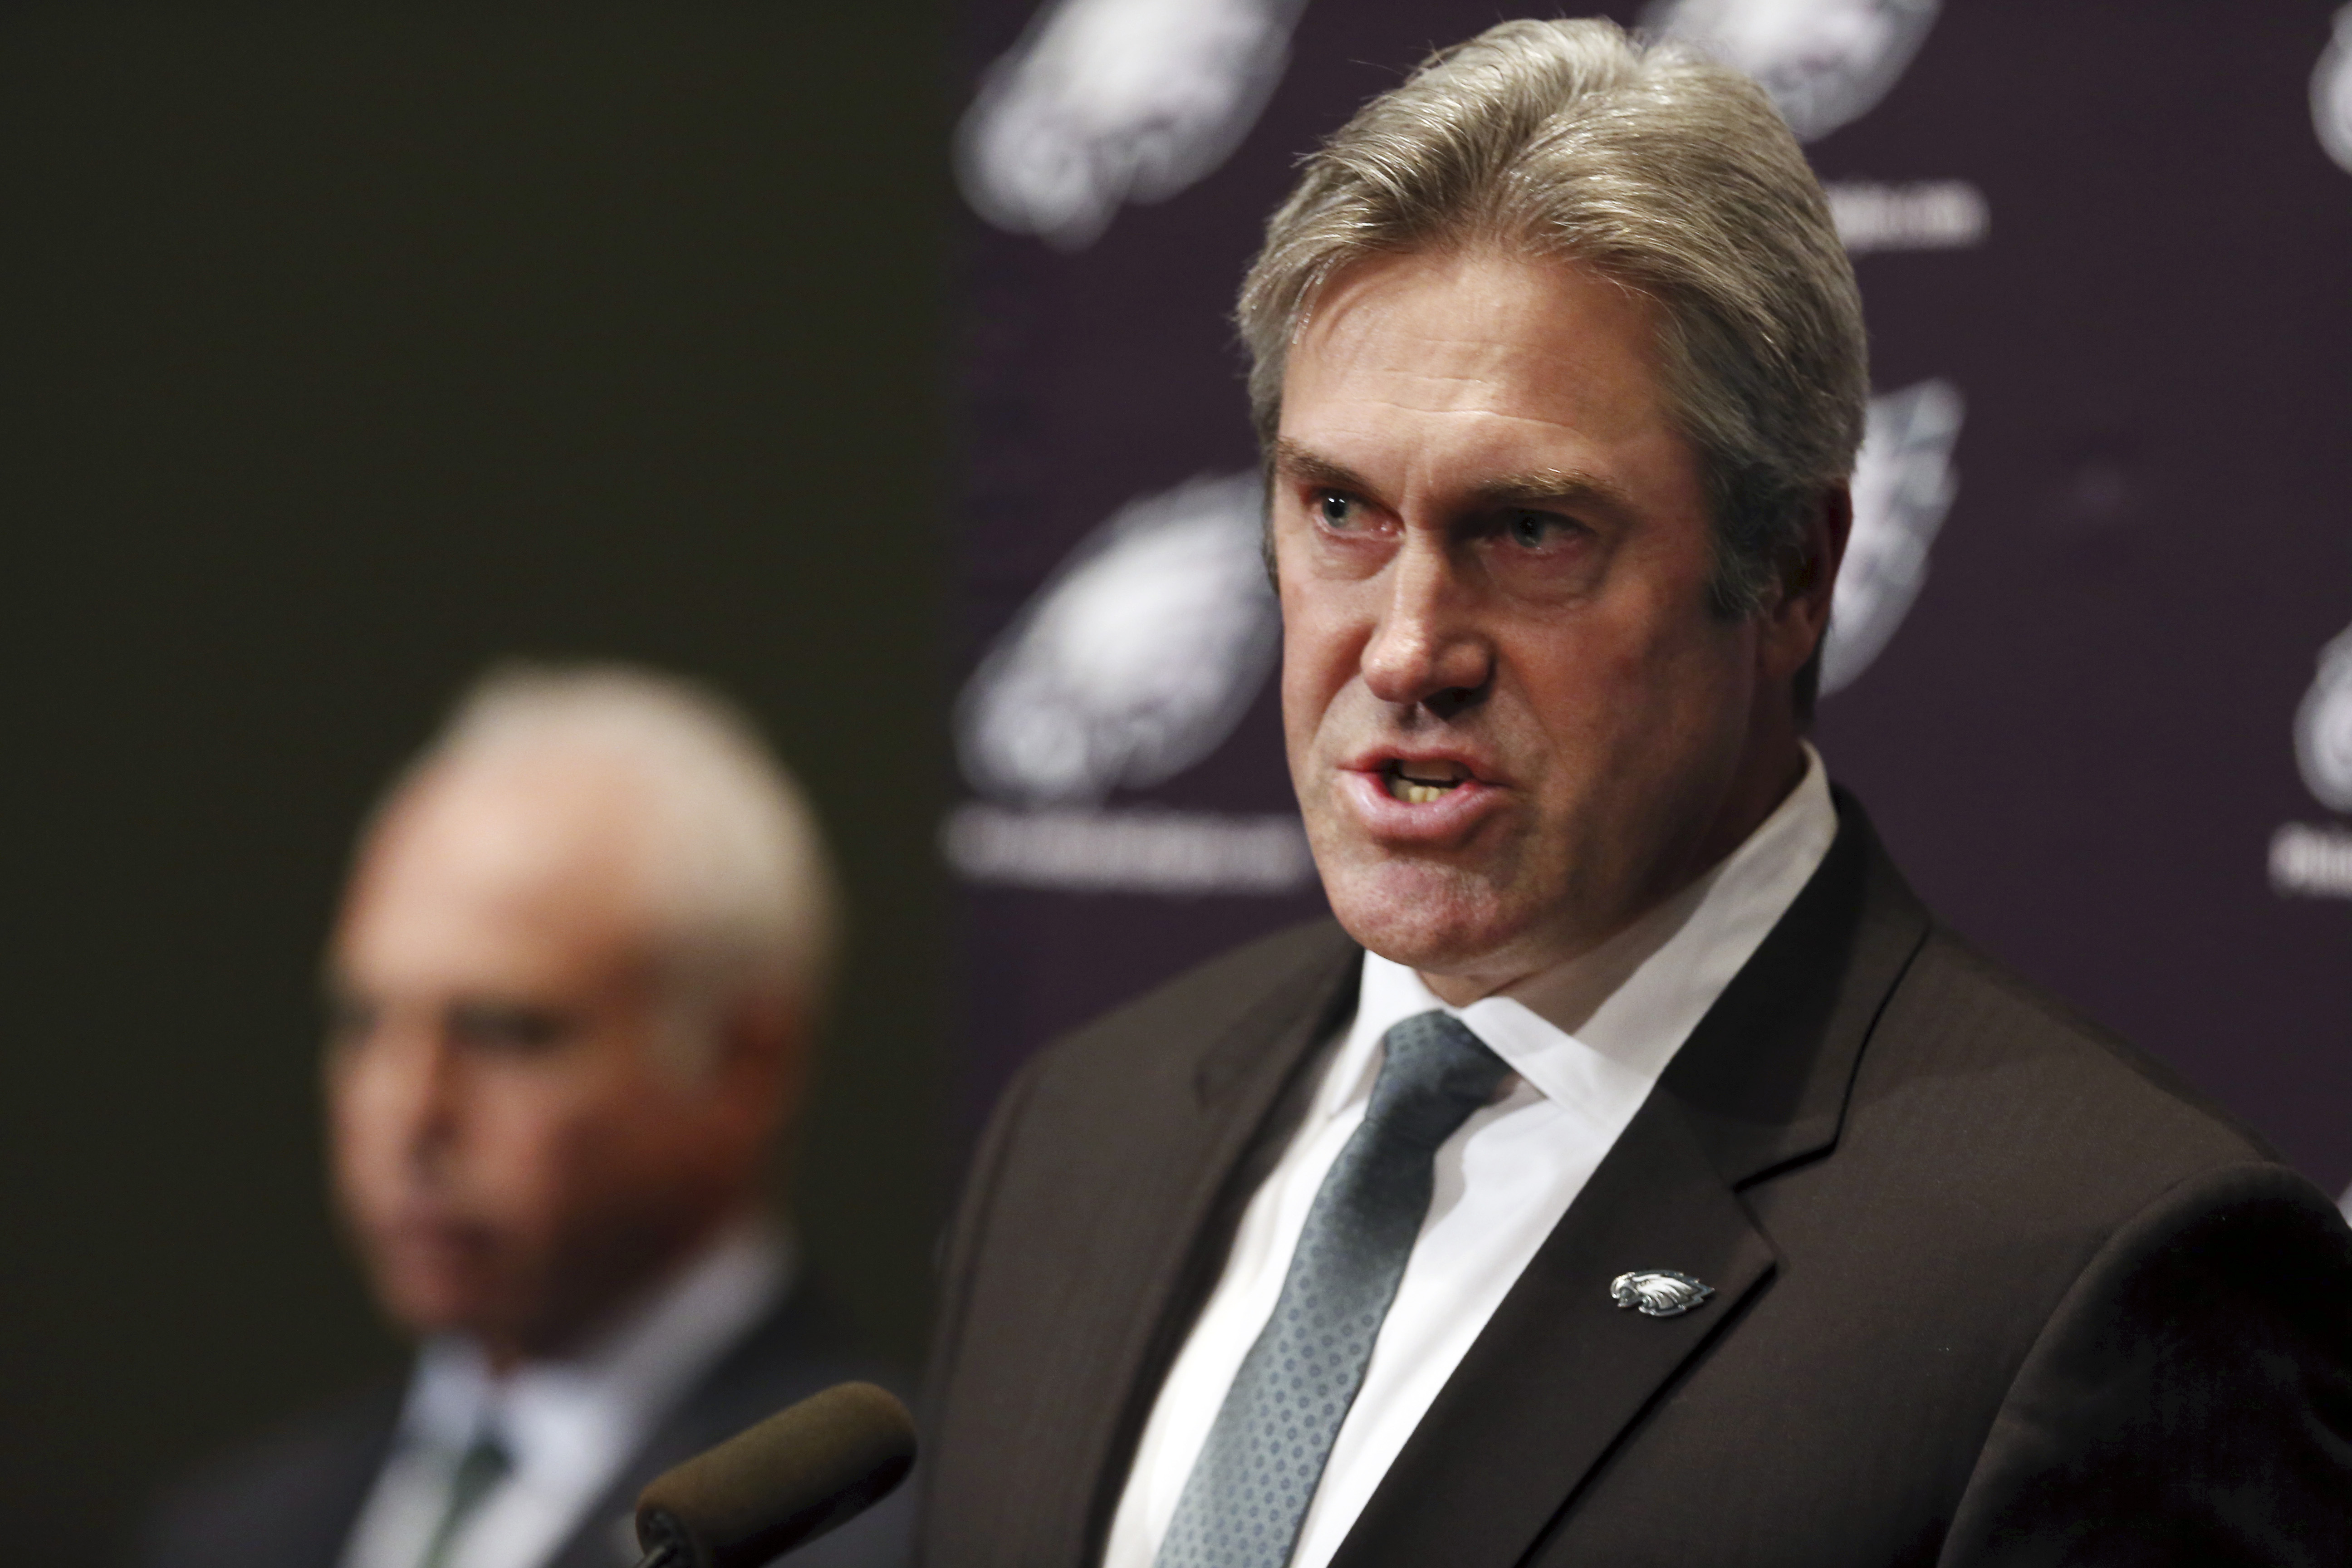 Philadelphia Eagles owner Jeffrey Lurie, left, listens as Doug Pederson, right, answers a question after he was introduced as the NFL football team's new head coach during news conference, Tuesday, Jan. 19, 2016, in Philadelphia. (AP Photo/Mel Evans)